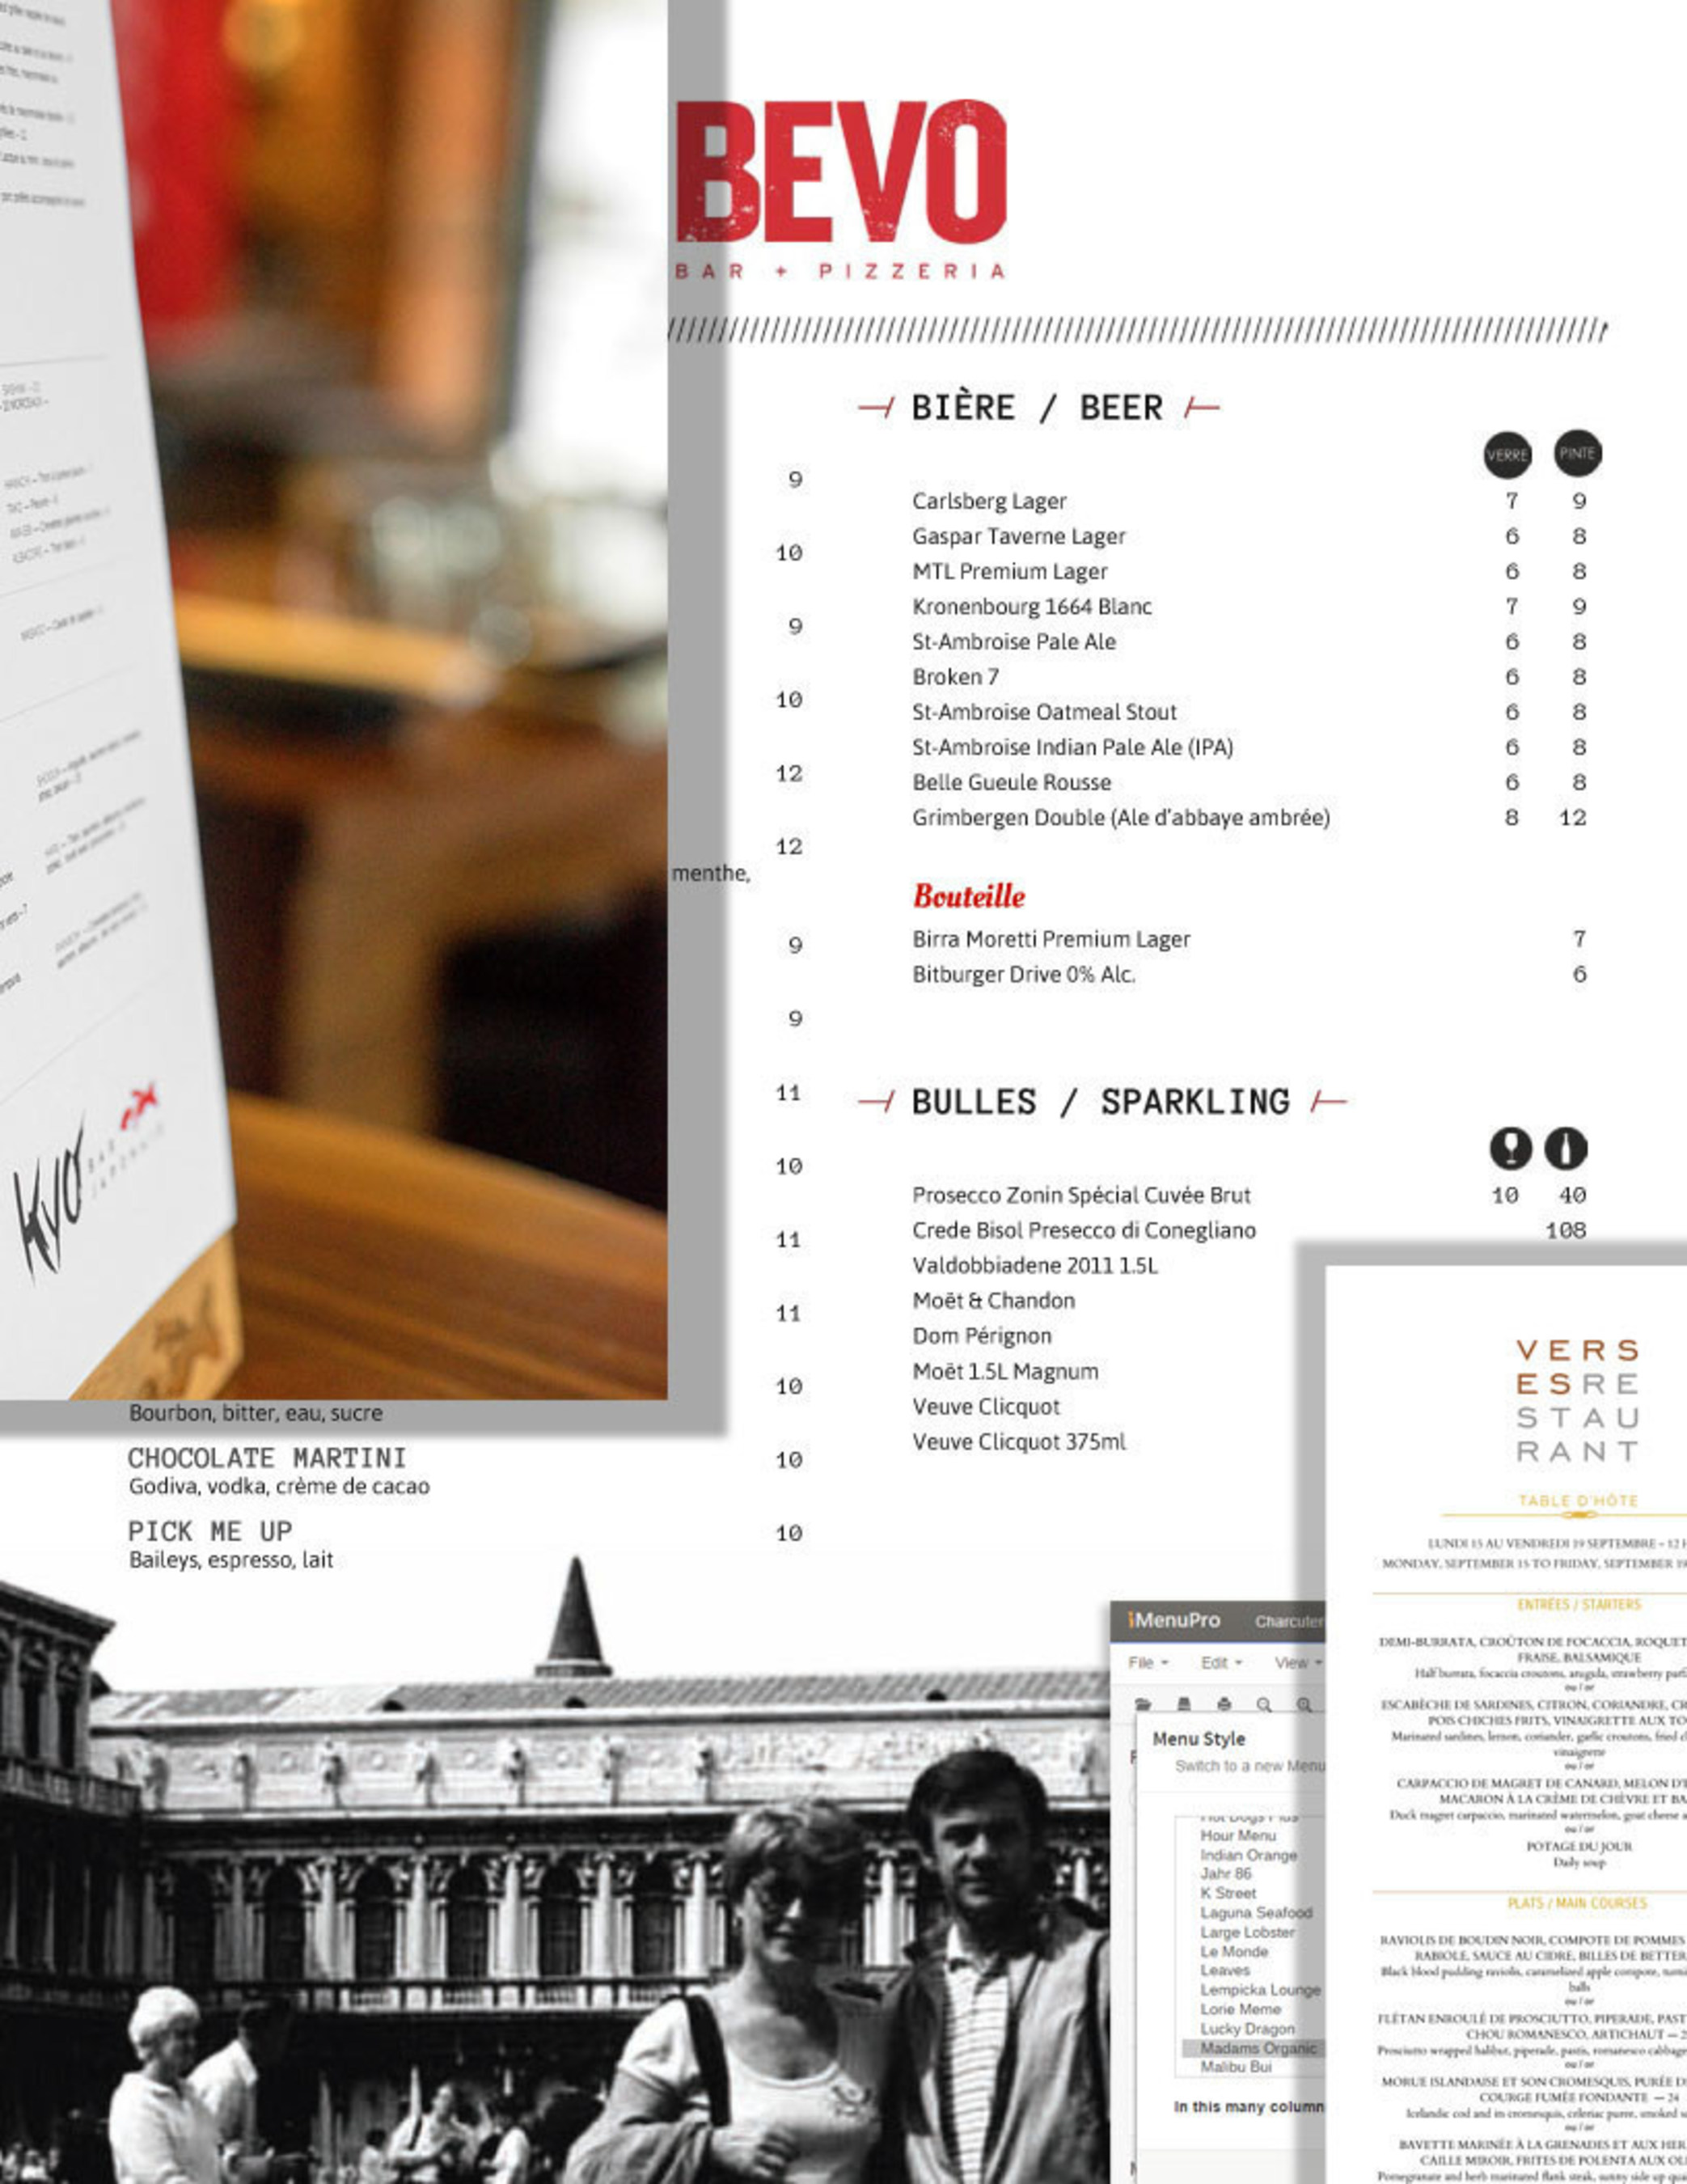 iMenuPro Adds New Features including Live-Sync Menus, Expands Accessibility of Online Menu Maker